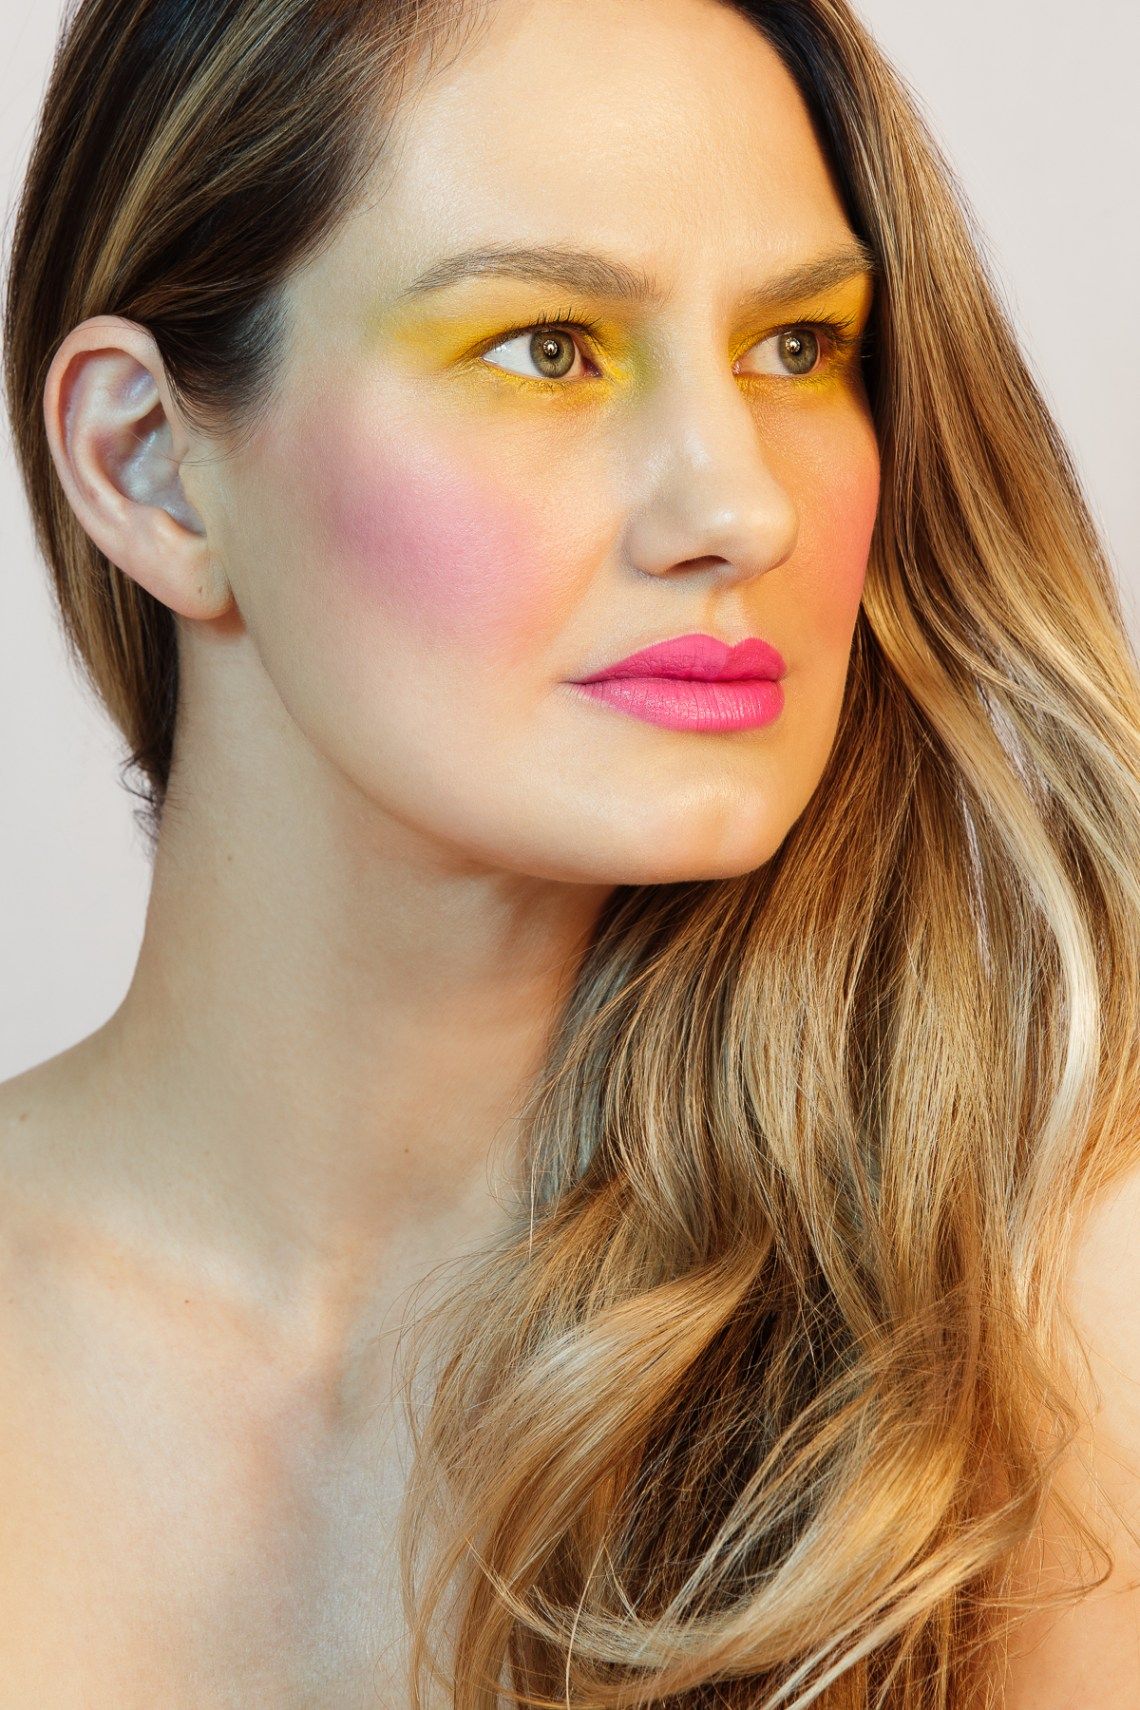 Beauty photography portraits of blonde model with blush, pink lips and yellow eye makeup